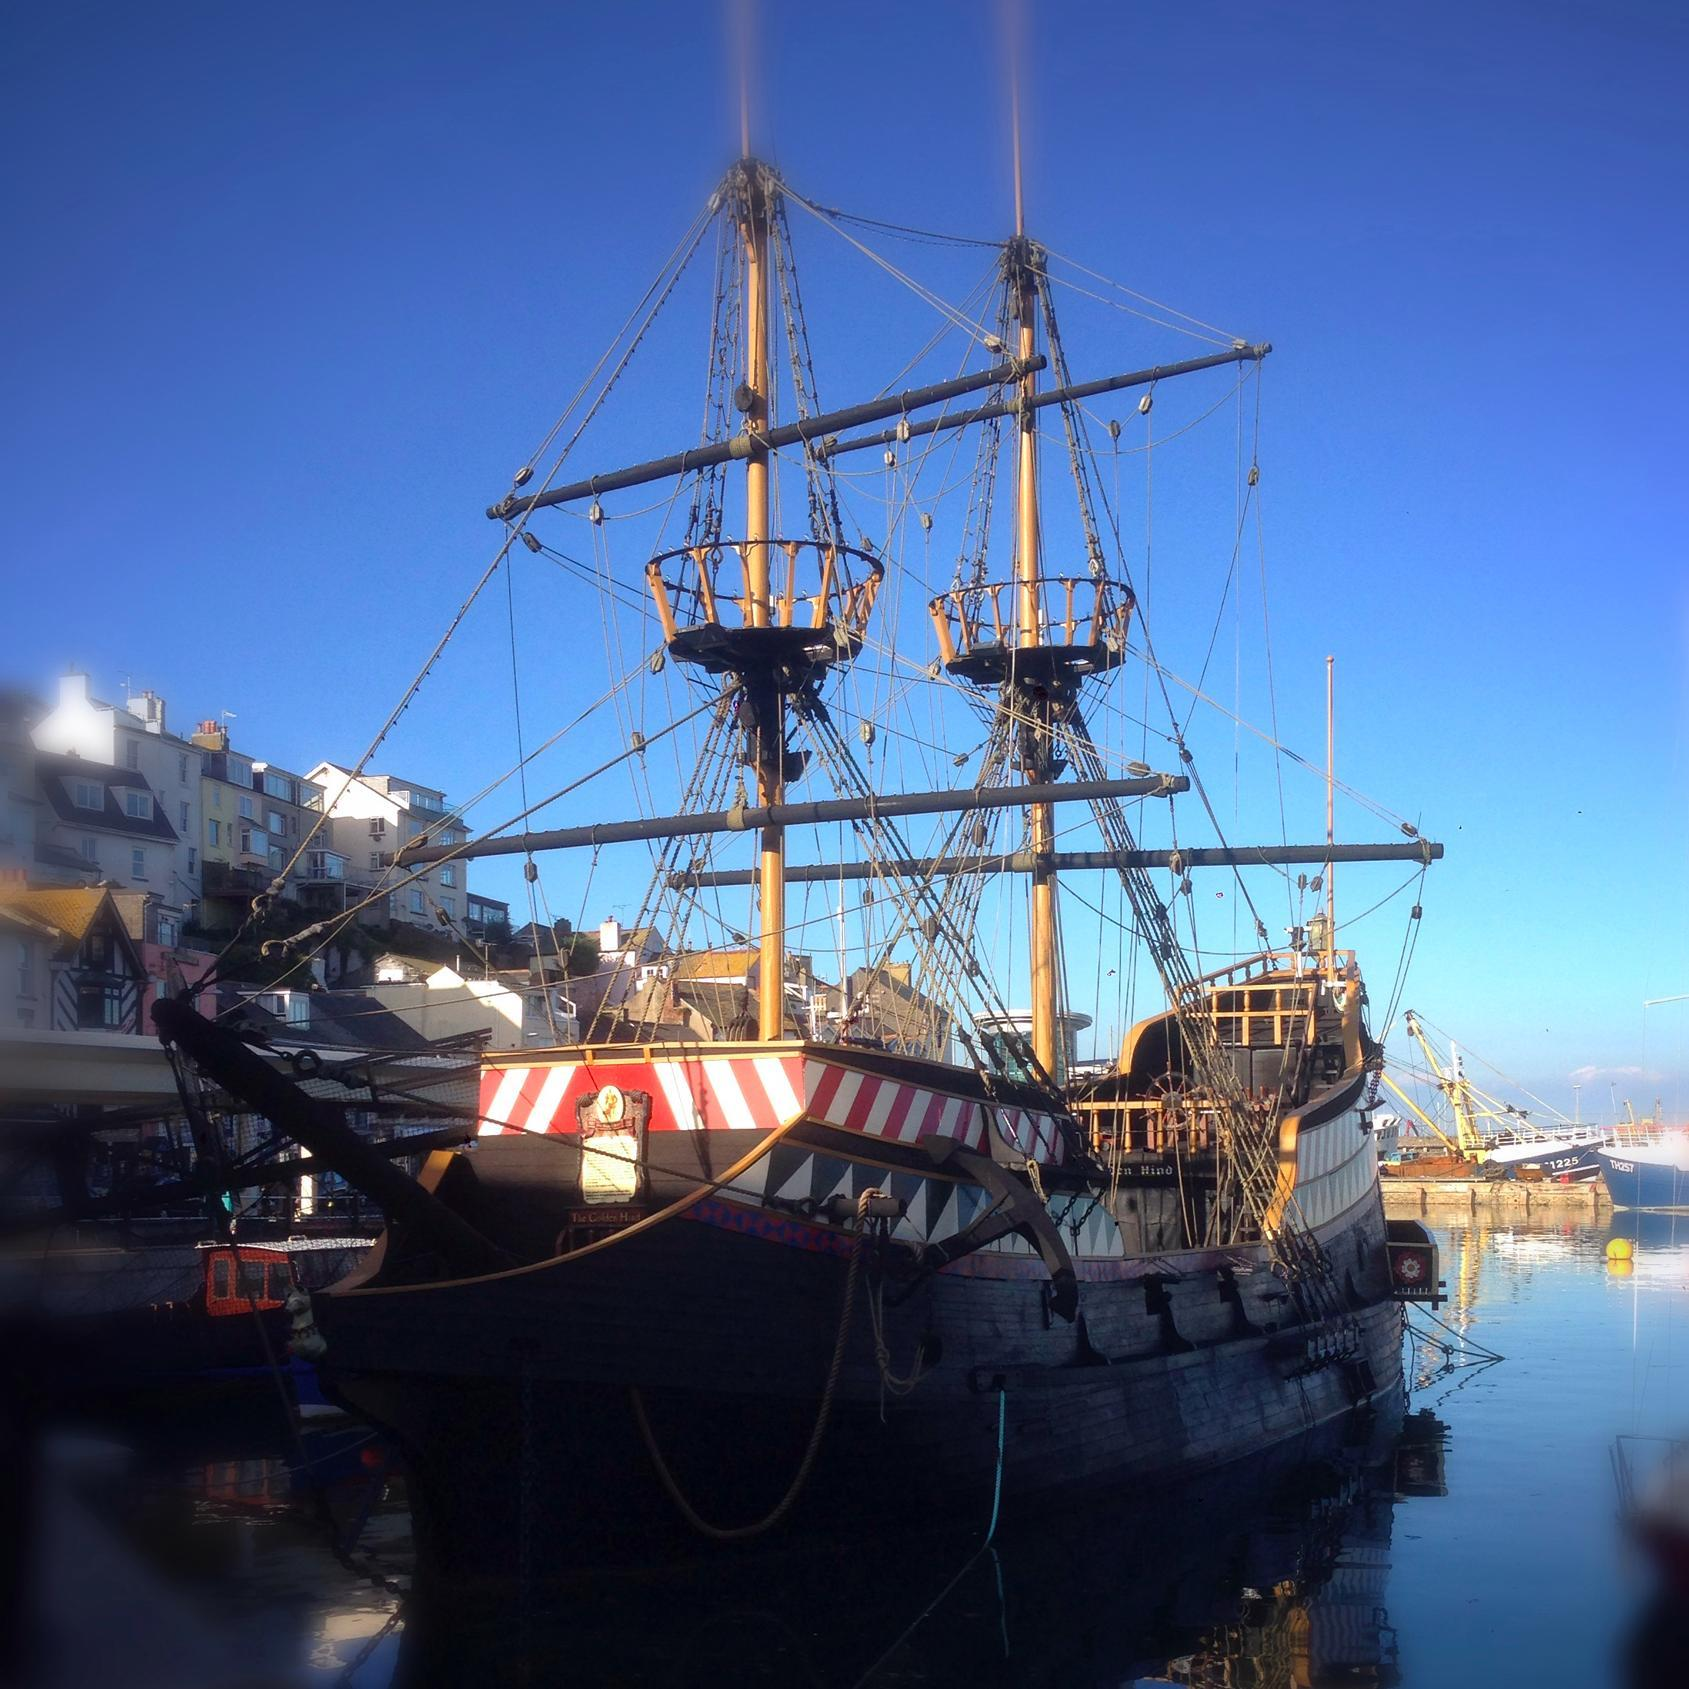 Golden Hind Brixham (@GoldenHindShip).